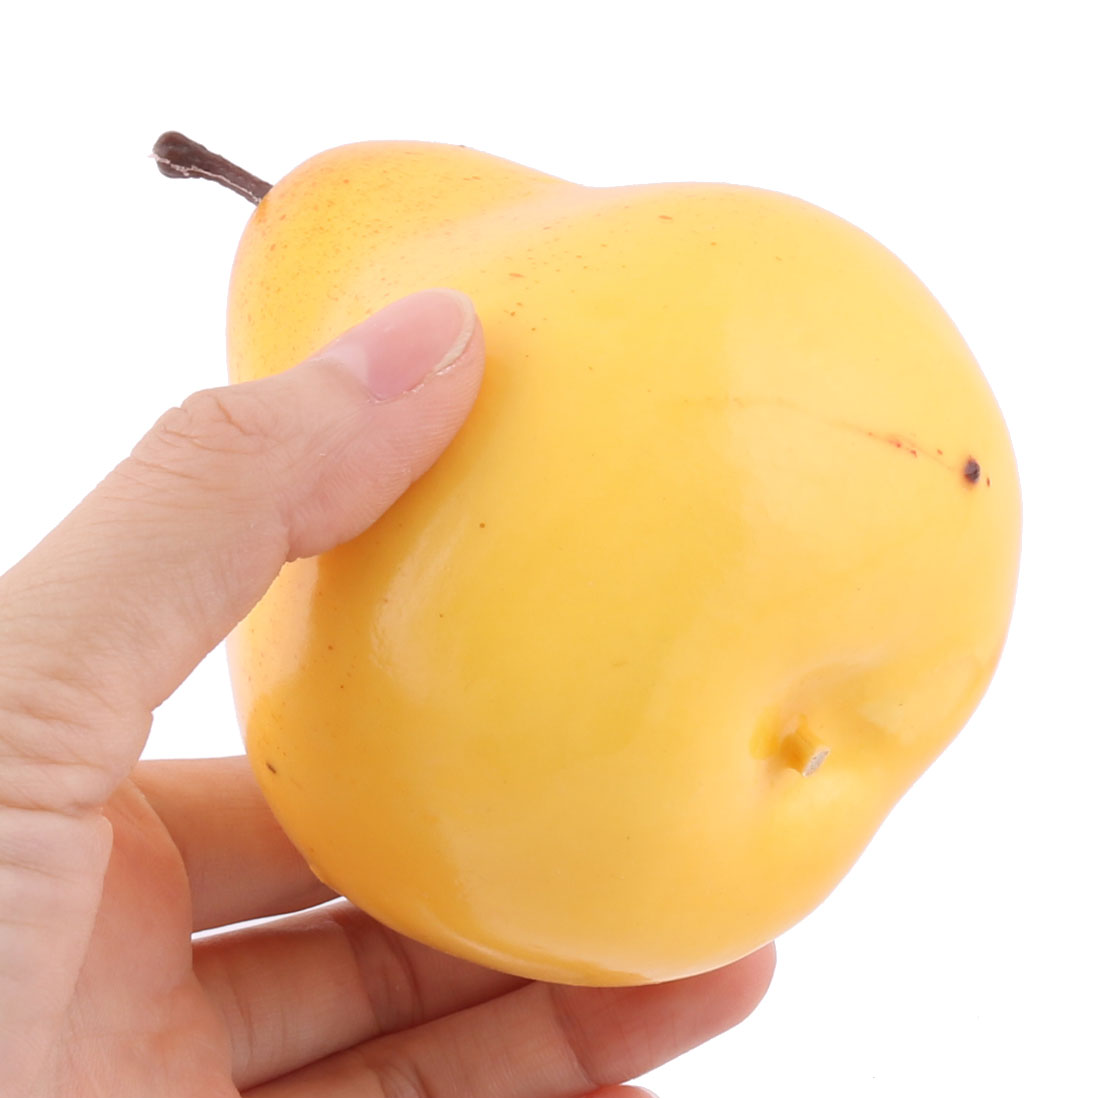 Household Table Decor Foam Handmade Simulation Artificial Fruit Pear Yellow 3pcs - image 1 of 3